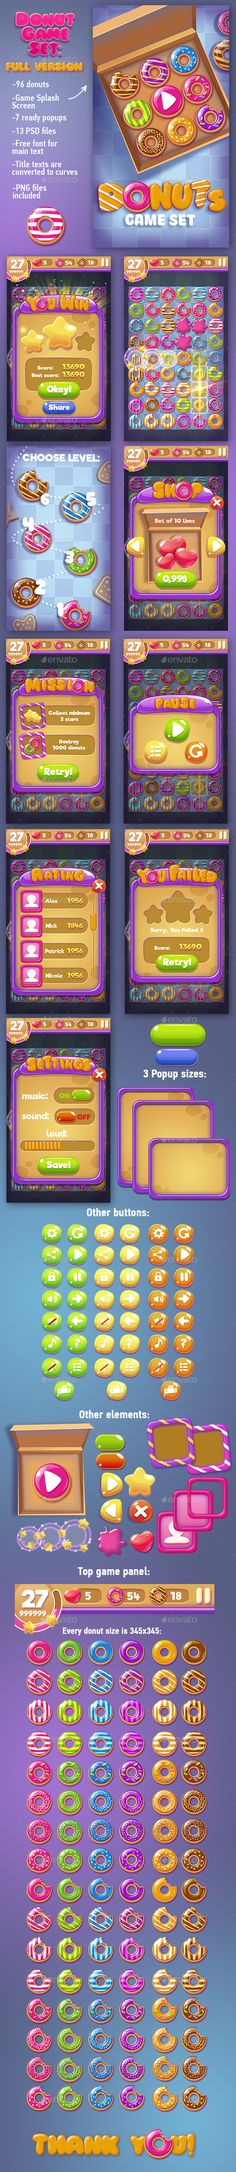 Big #Donuts #Game Set with #GUI